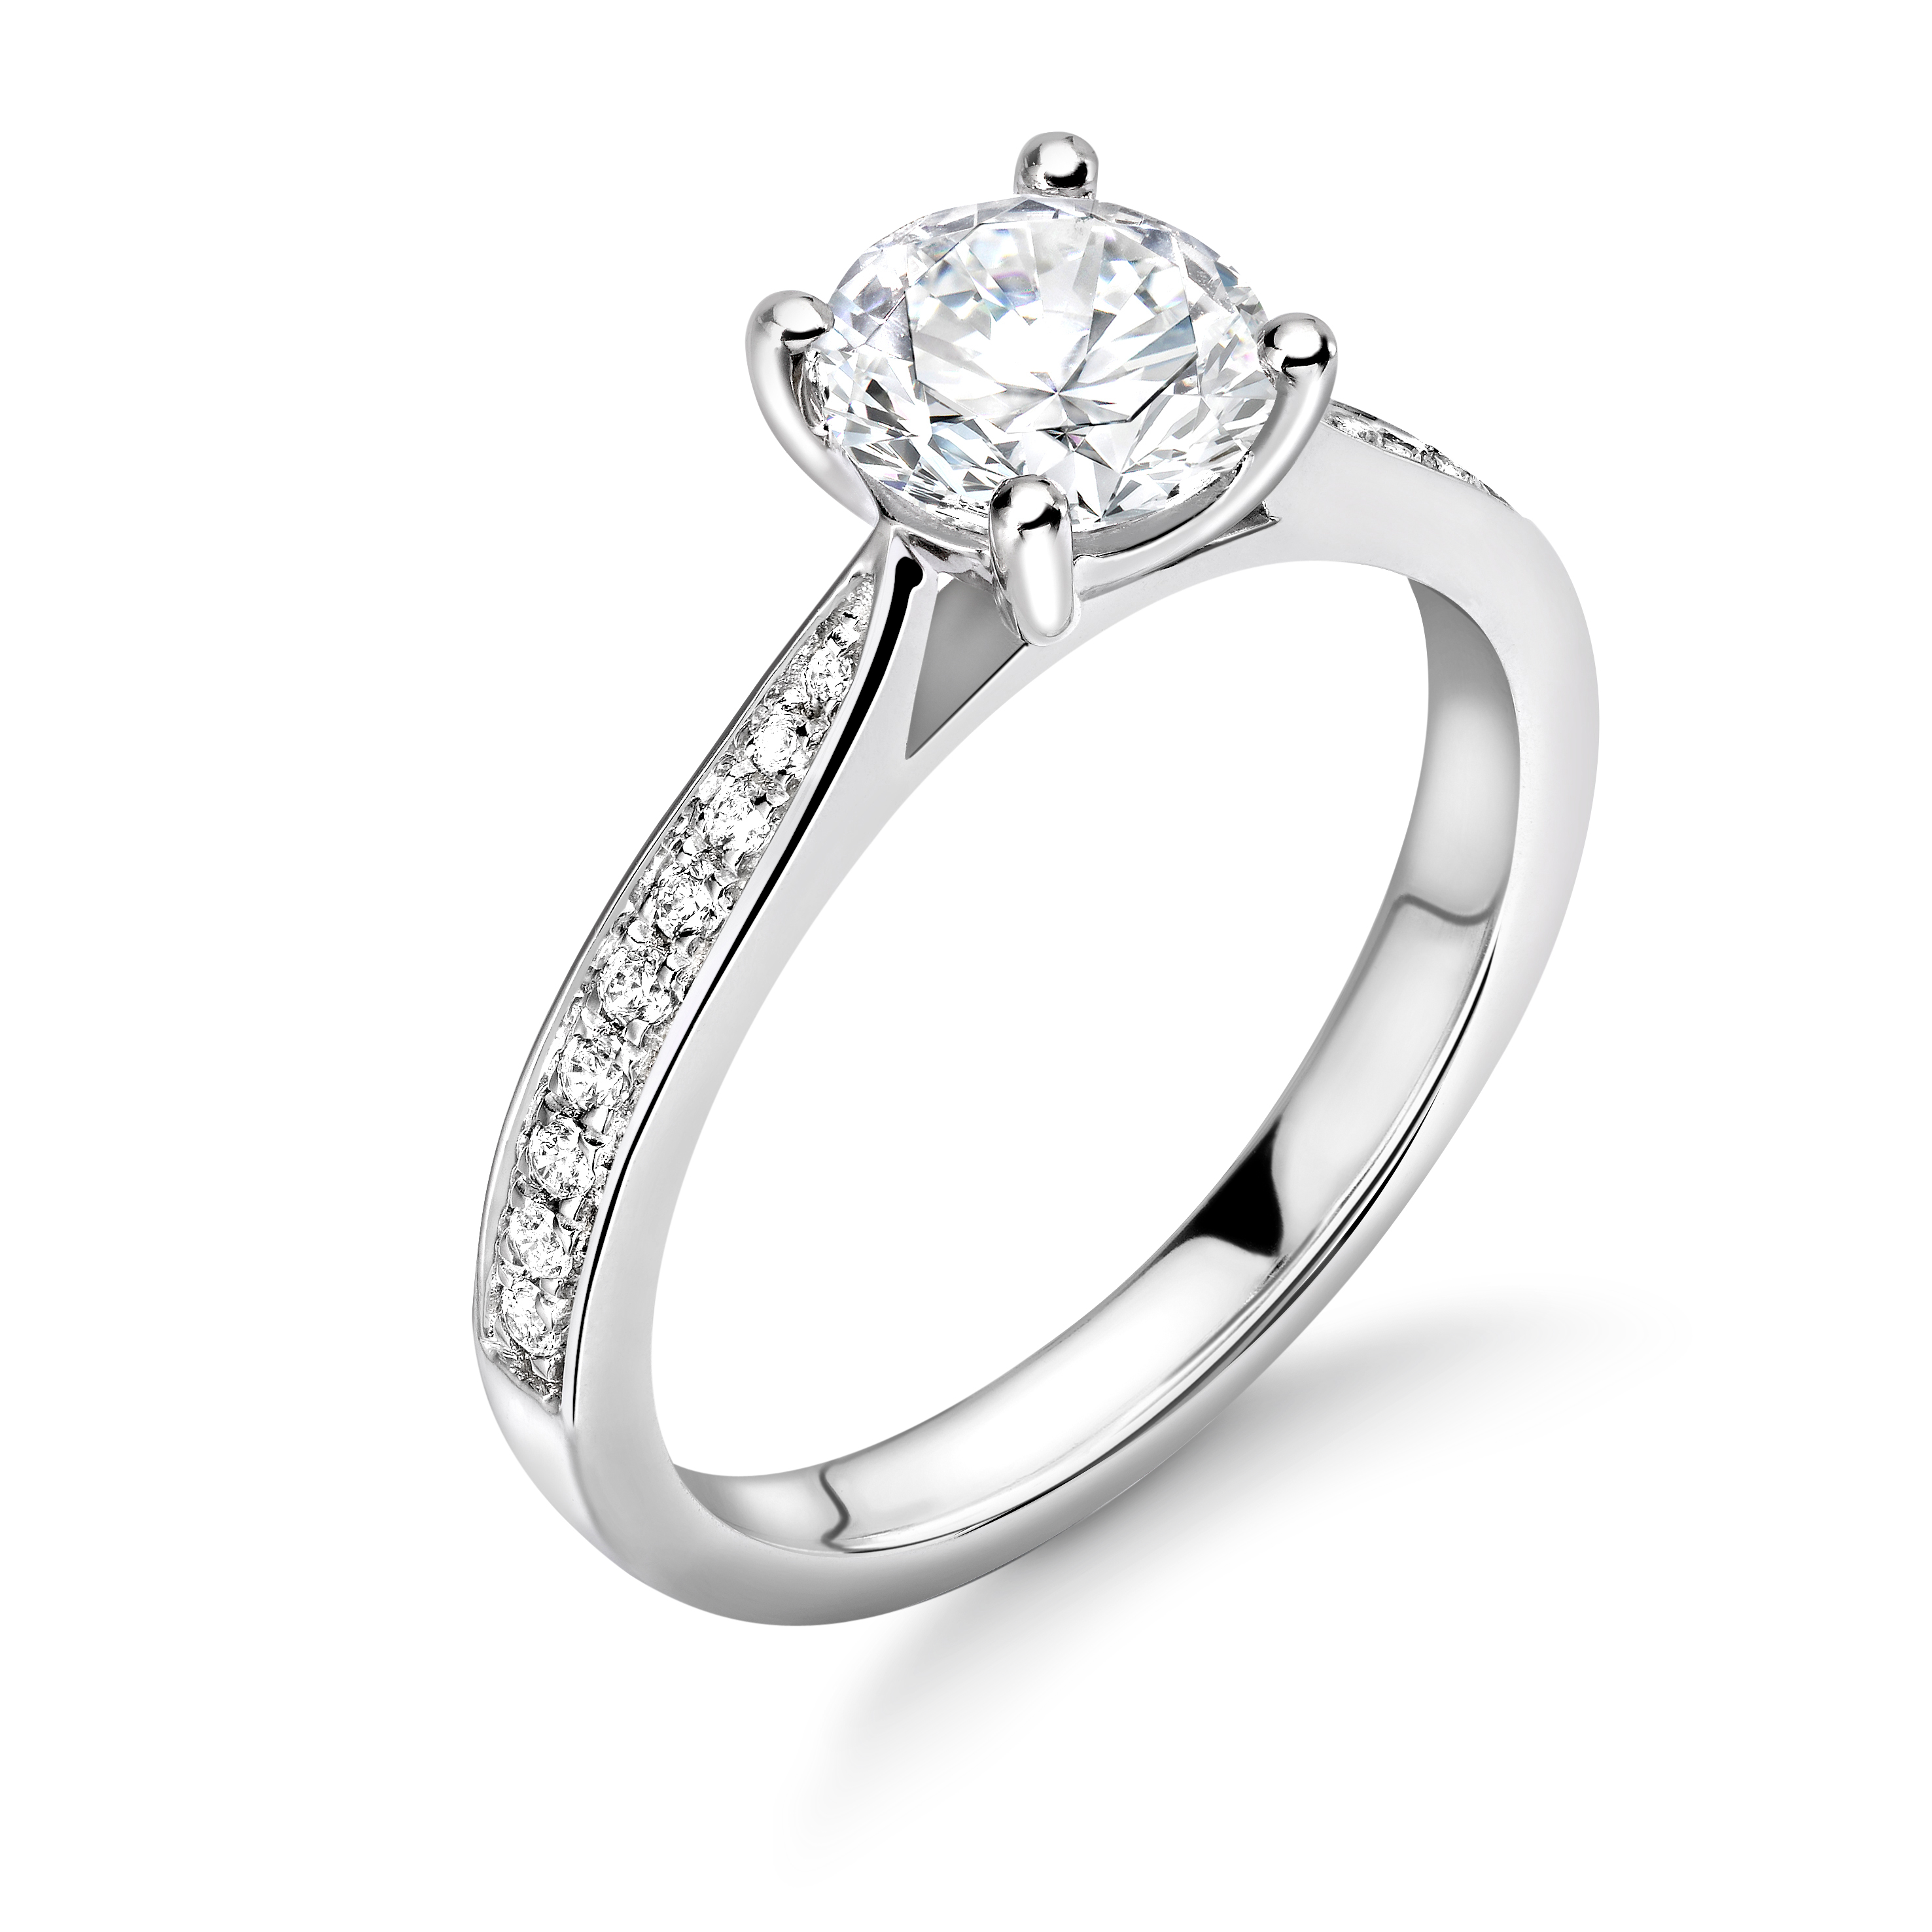 Tapering Down Shoulders Set Side Stone Diamond Engagement Ring